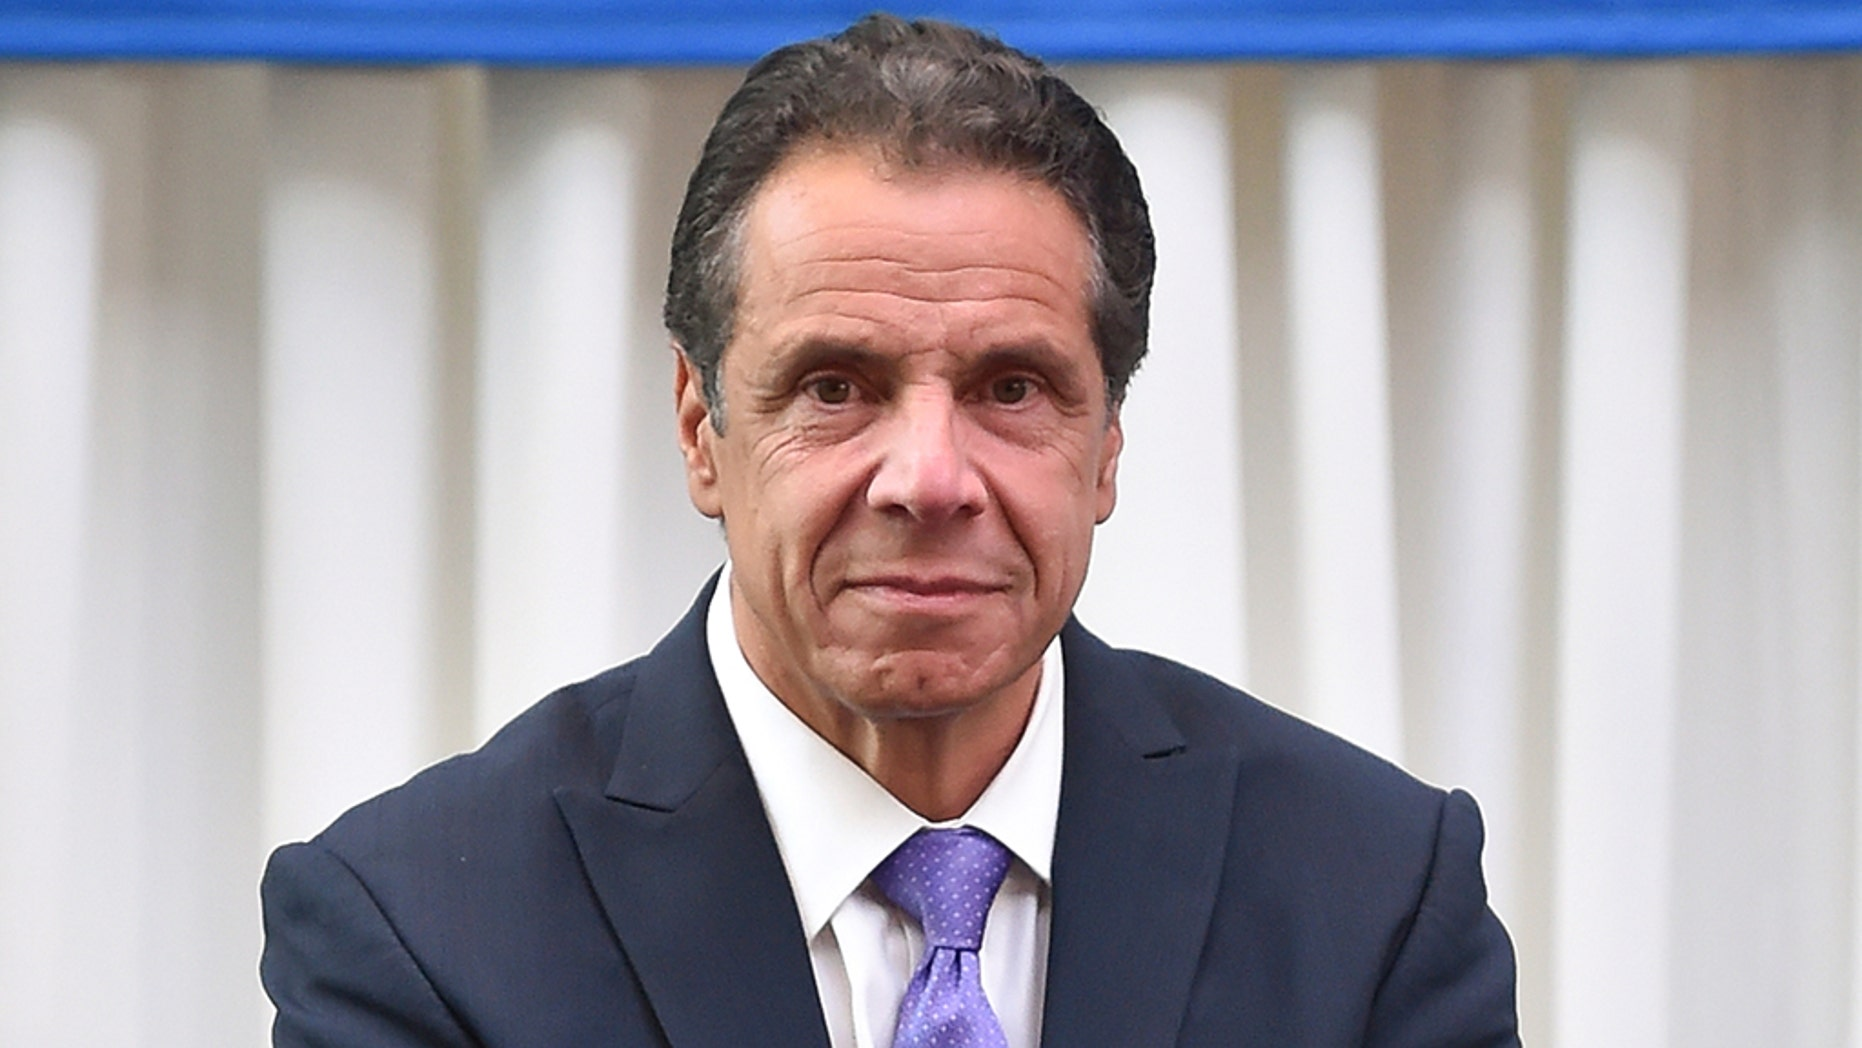 Concert New York 2020 Michael Goodwin: Is New York Governor Cuomo poised for 2020 after